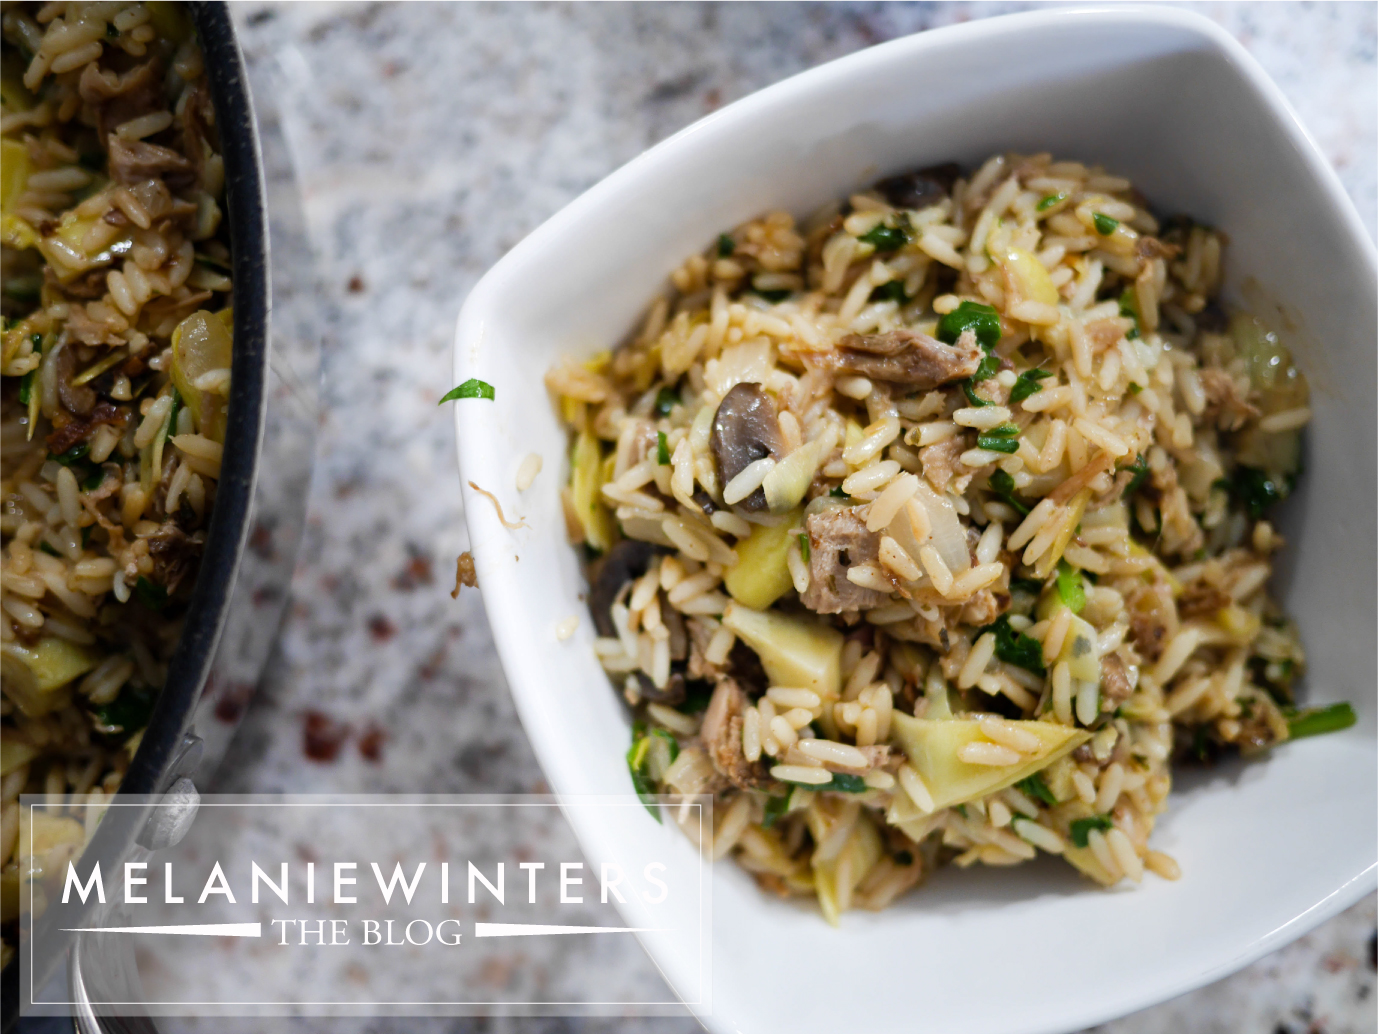 An easy 1 pan dinner that is packed with flavor and is a perfectly creative way to reuse leftover pork or chicken.